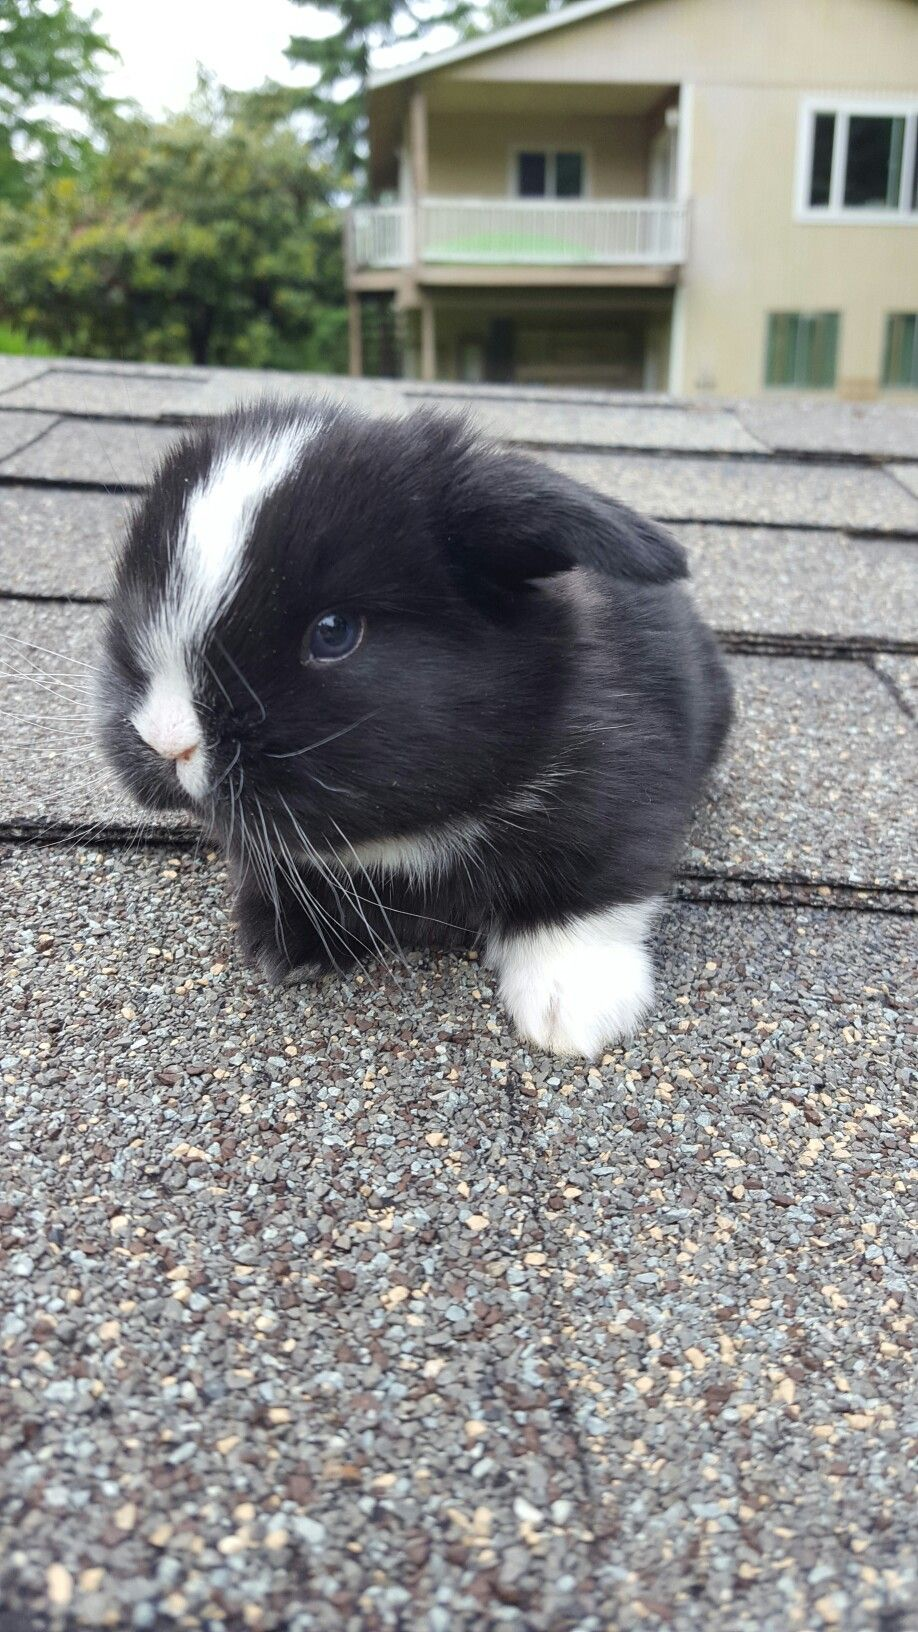 Black Vienna Marked Baby Holland Lop Check Out More Bunnies For Sale At Bluecloverrabbitry Weebly Com Cute Bunny Pictures Baby Animals Funny Cute Baby Animals